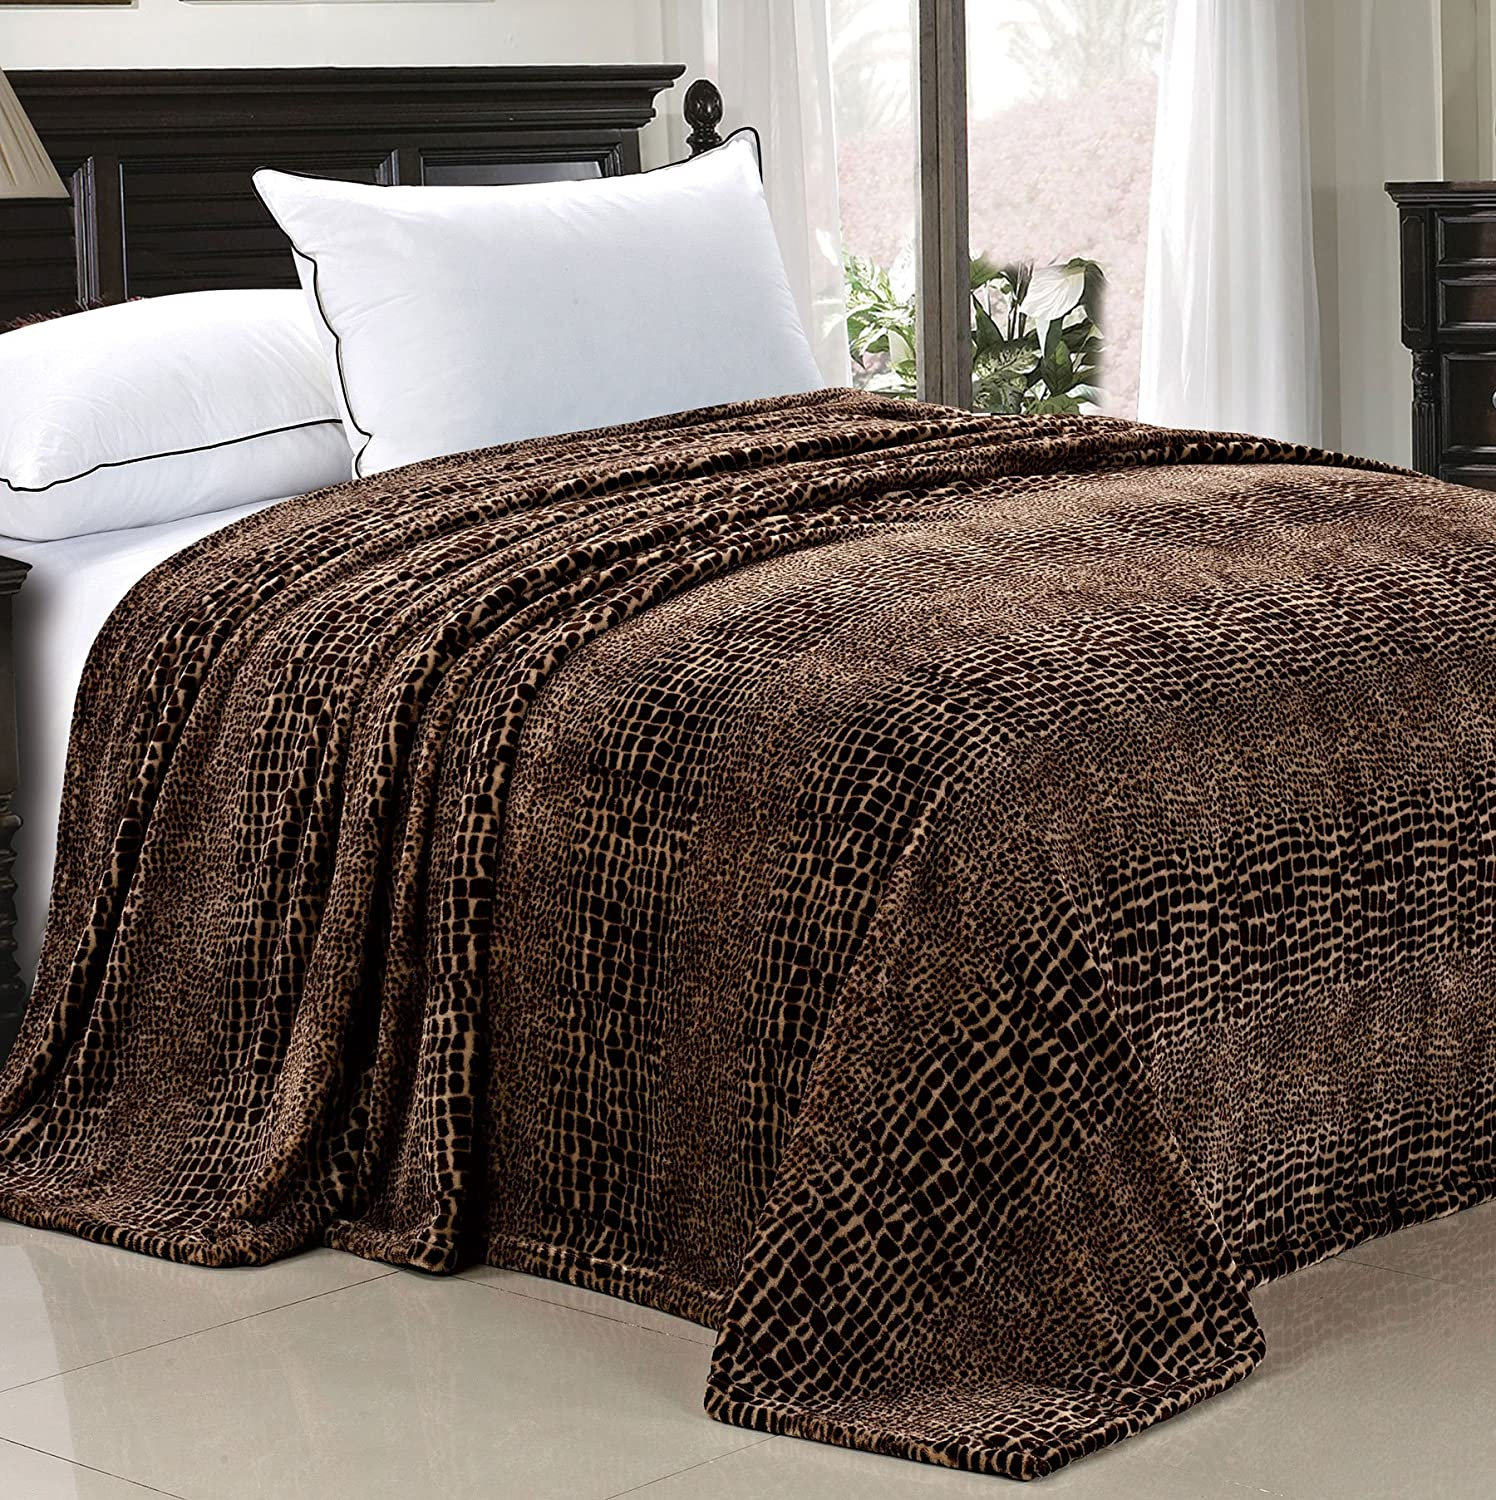 Colorado Max 90% OFF Springs Mall Home Soft Things Light Weight Chocolate Animal Safari Style Whit